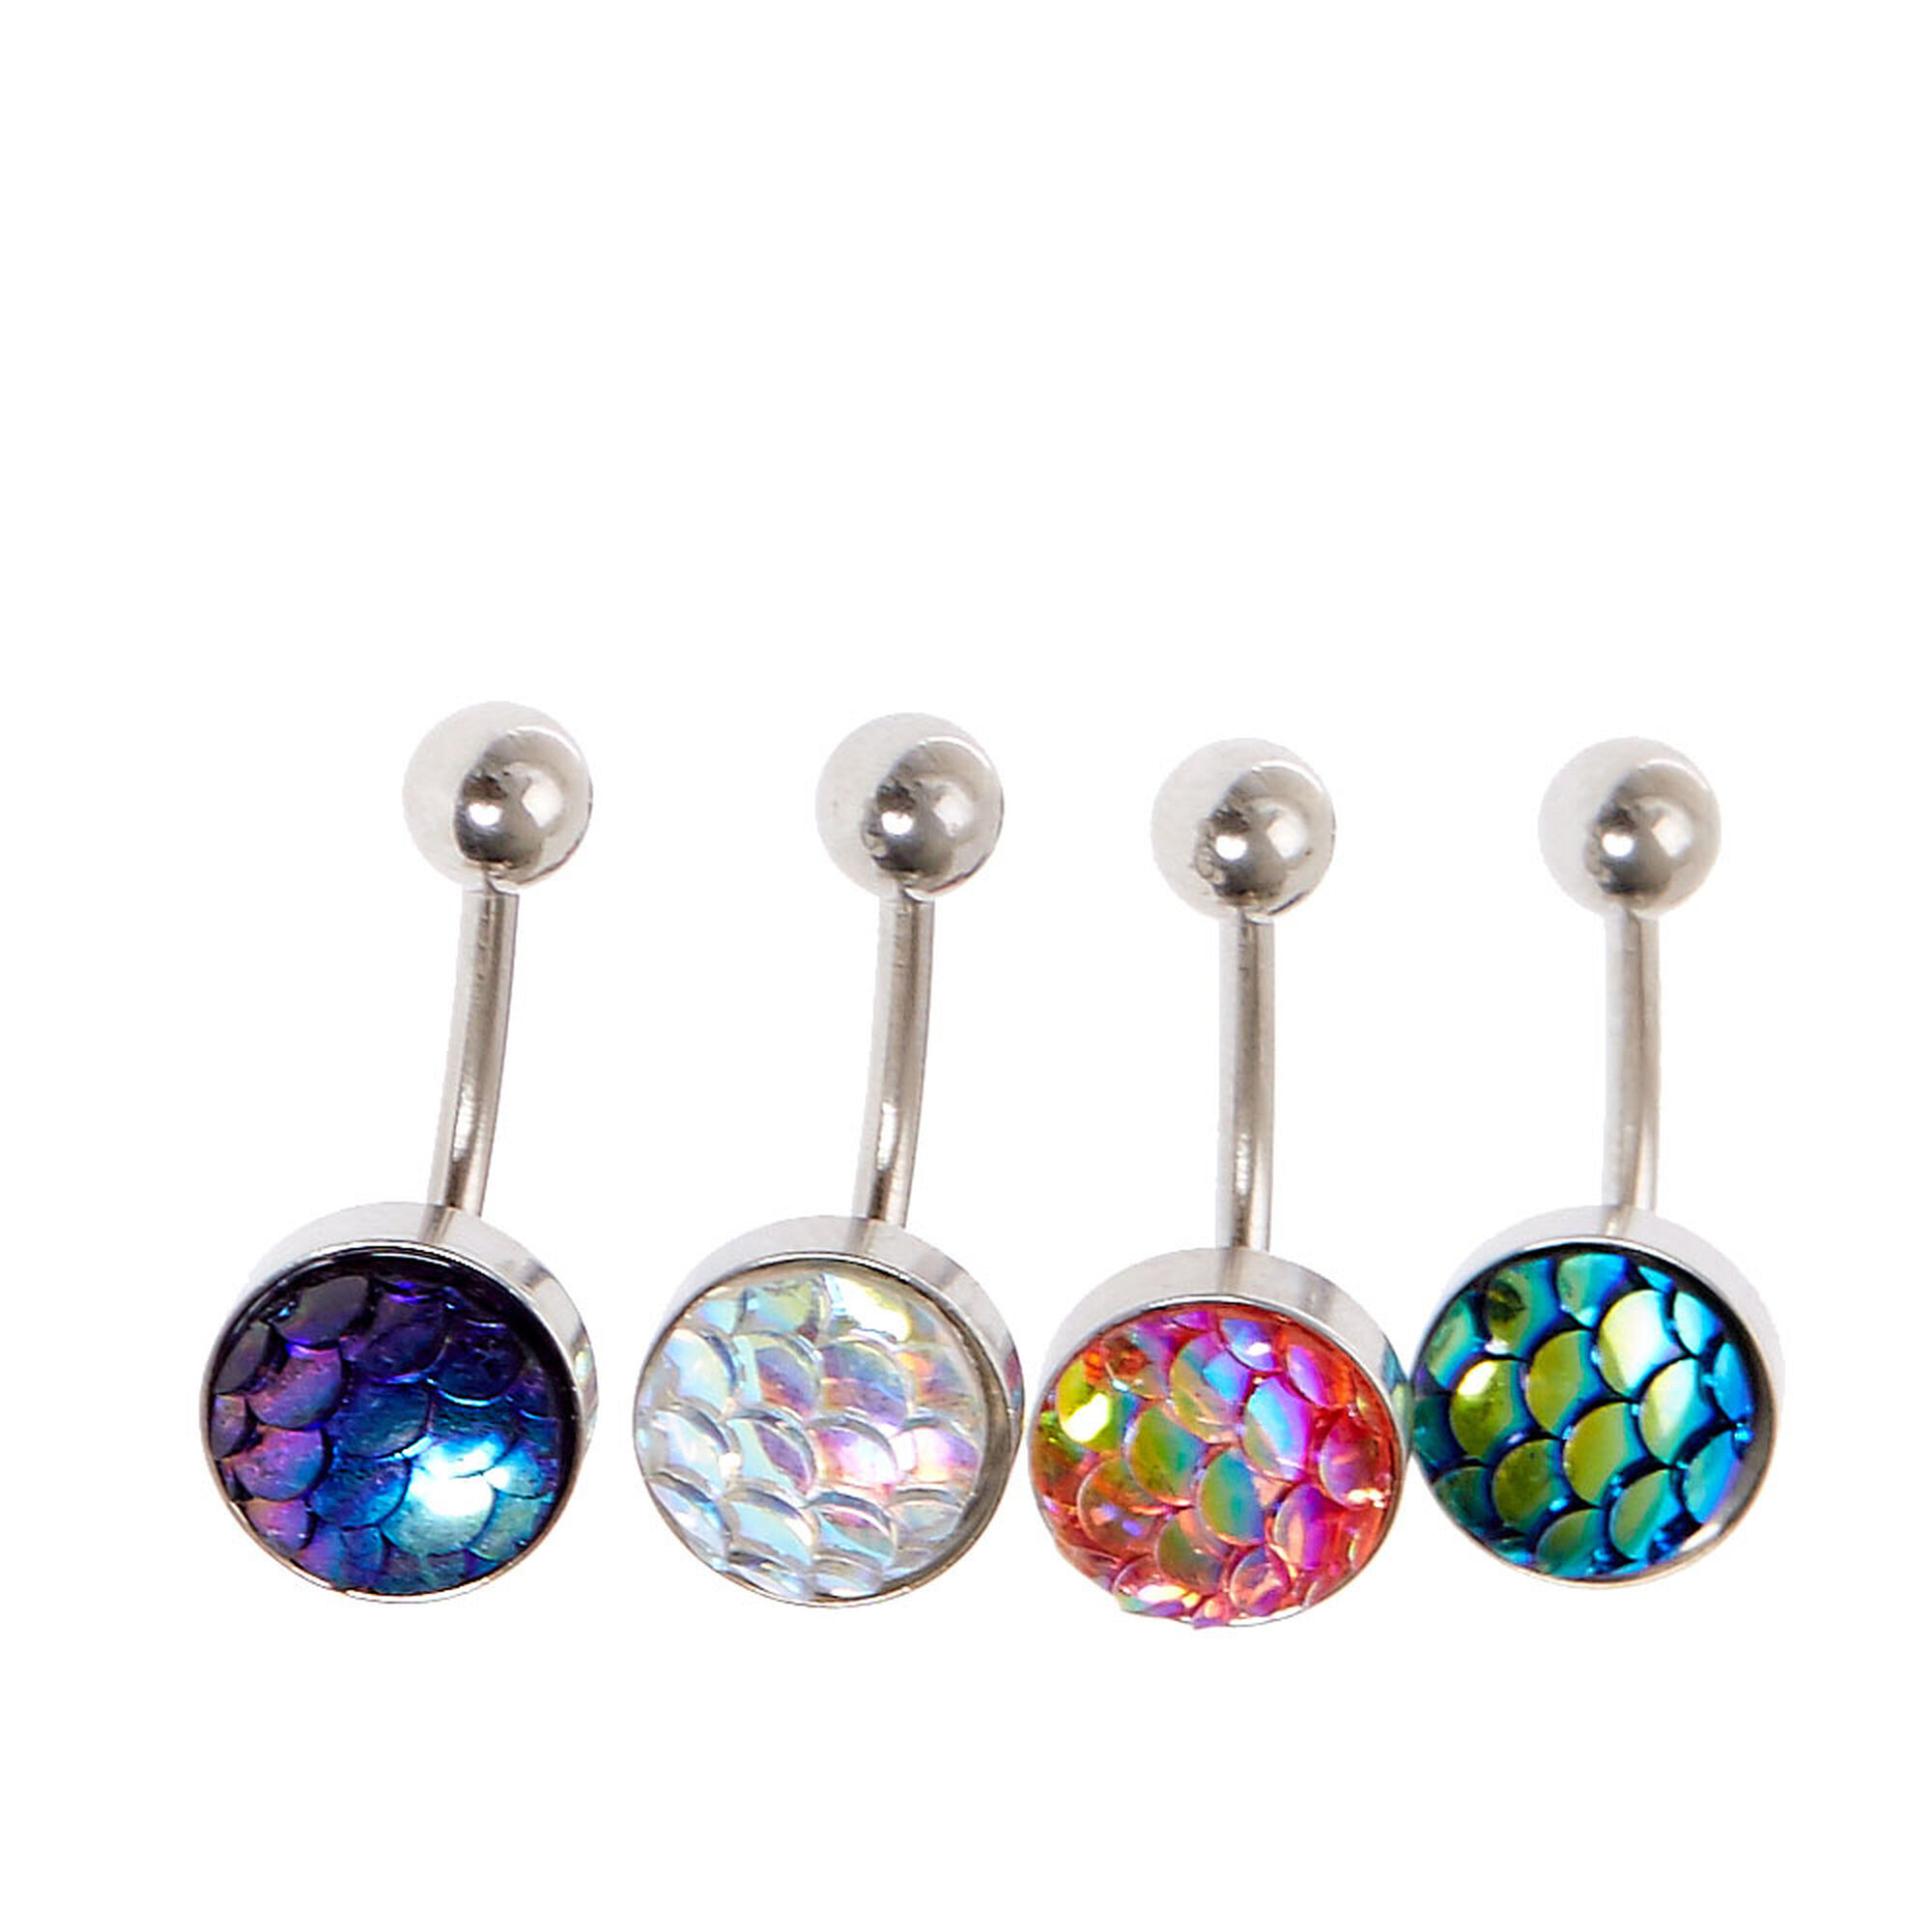 Mermaid belly button rings claire 39 s us for Belly button jewelry store